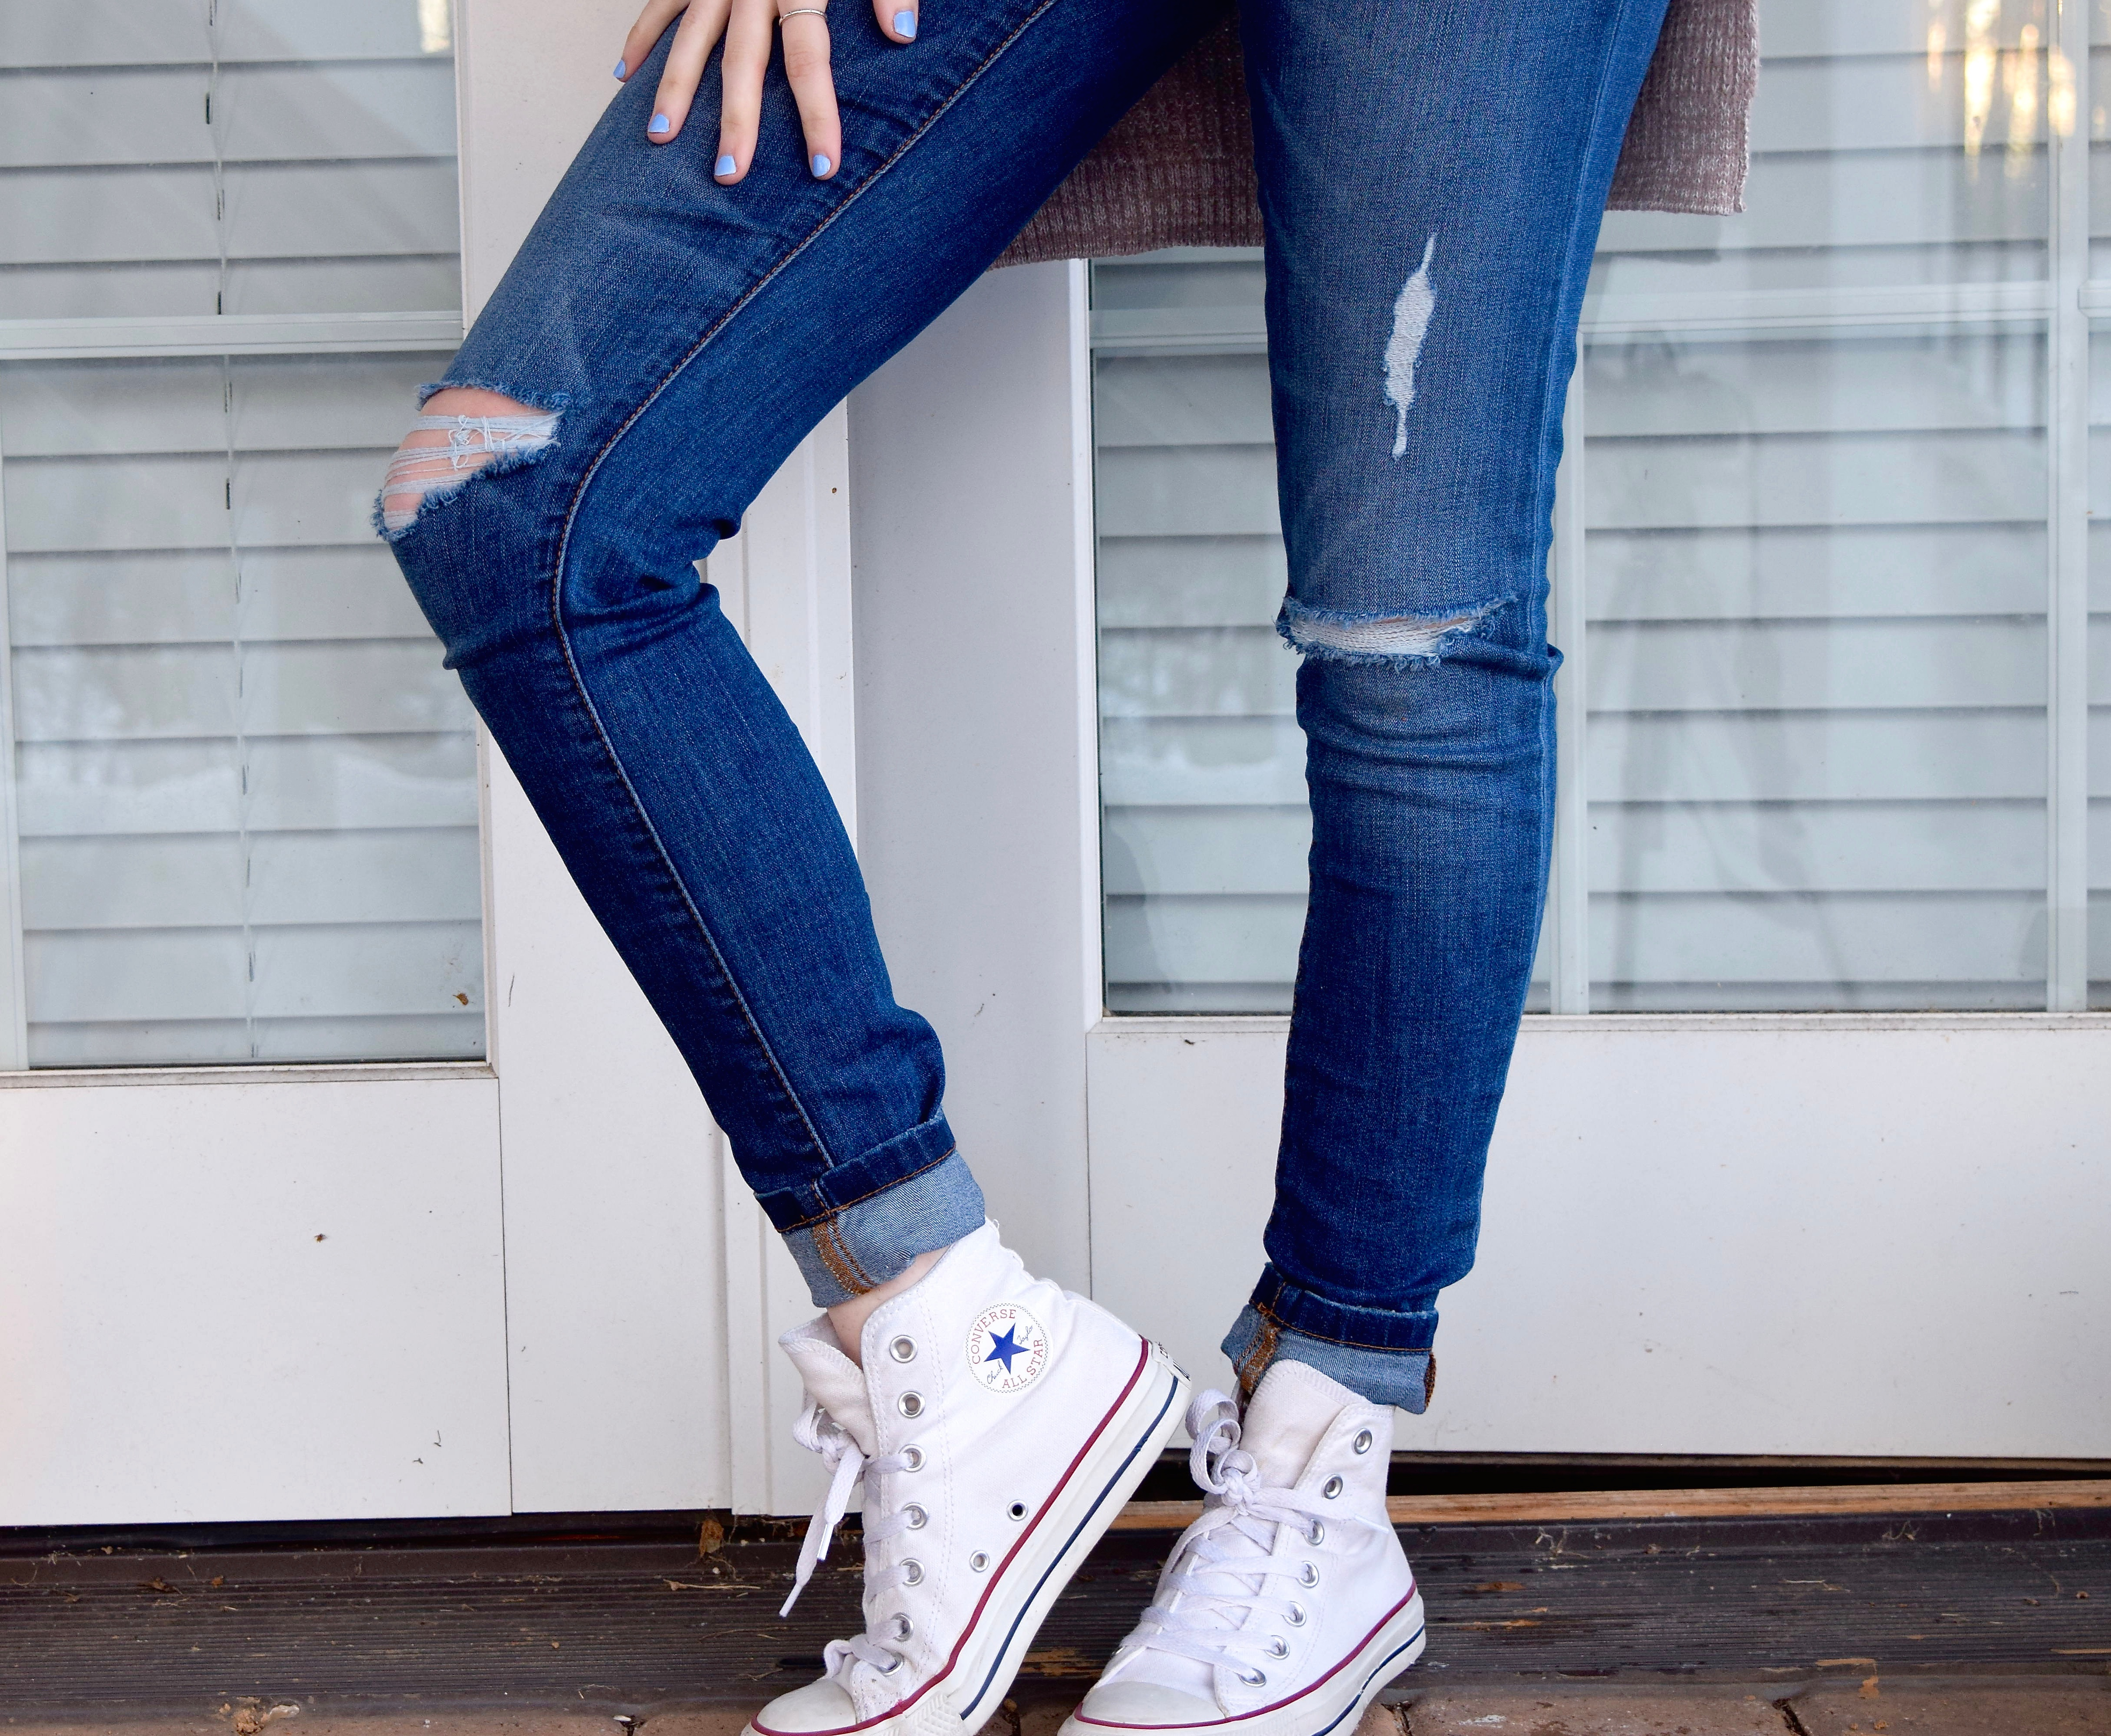 converse all star jeans